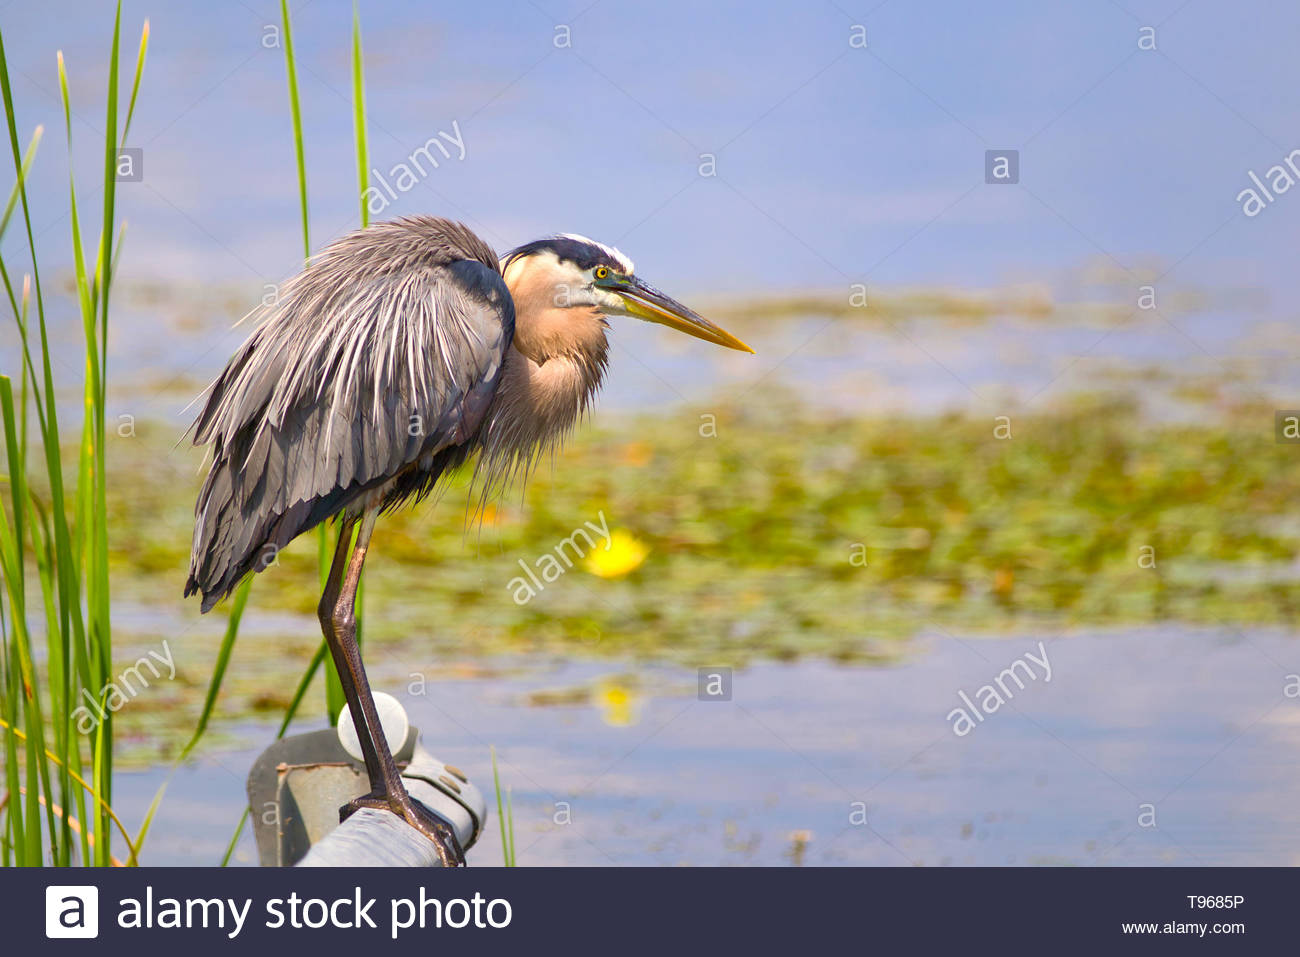 Great Blue Heron drying off in the sunlight in Florida Stock Photo